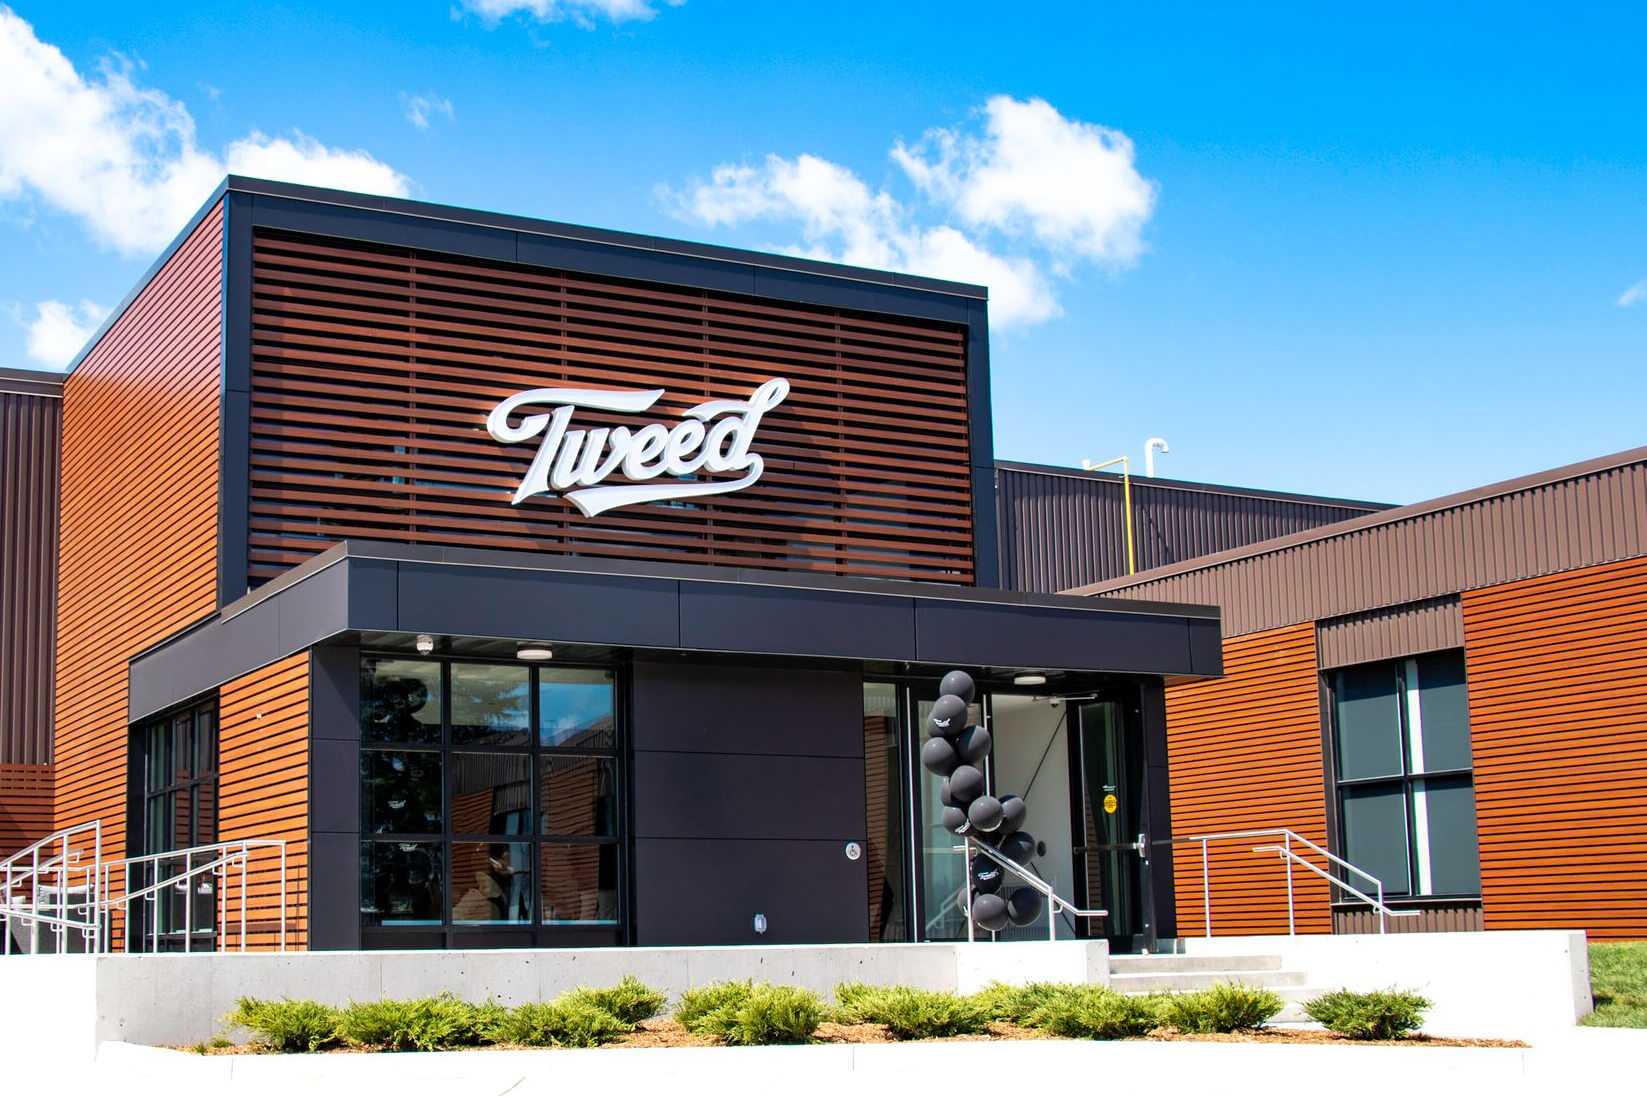 Tweed Visitor Centre in Smiths Falls, Ontario